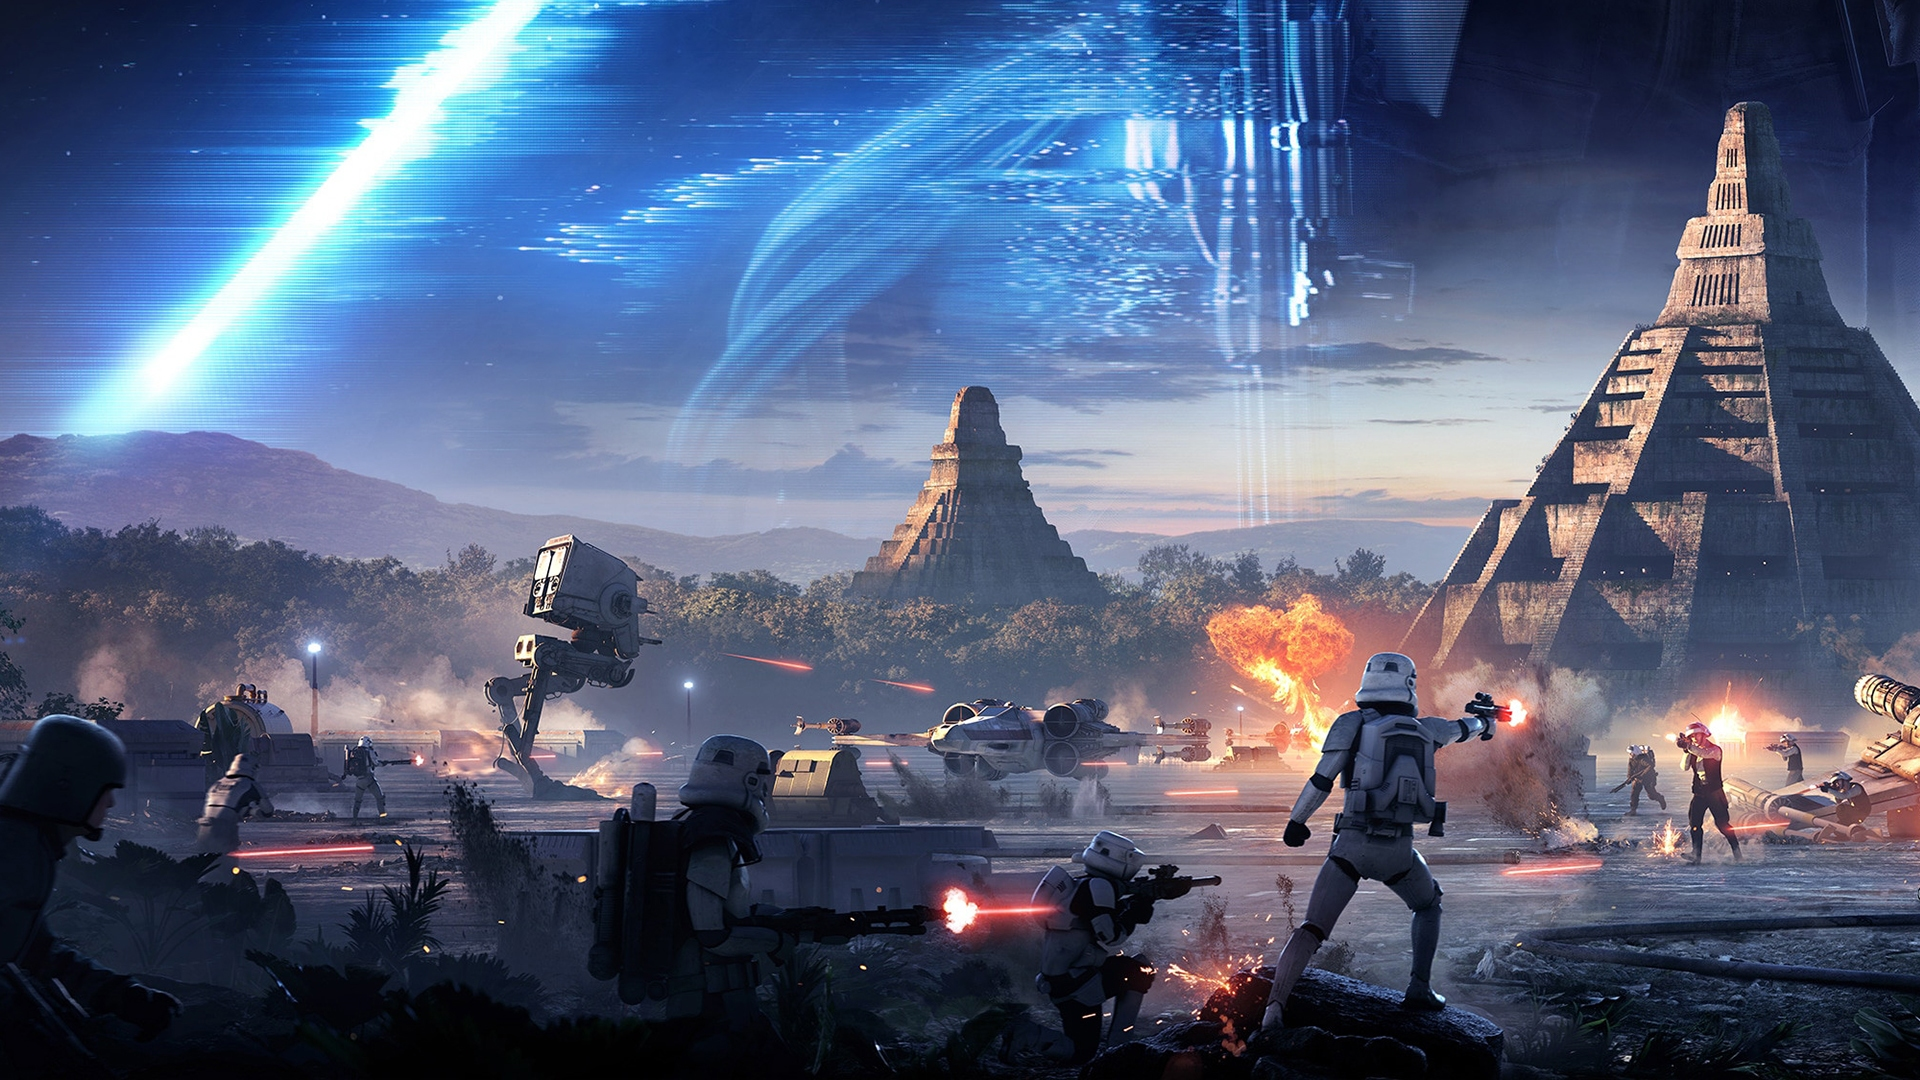 1swbattlefront Action Battlefront Fighting Futuristic Sci Fi